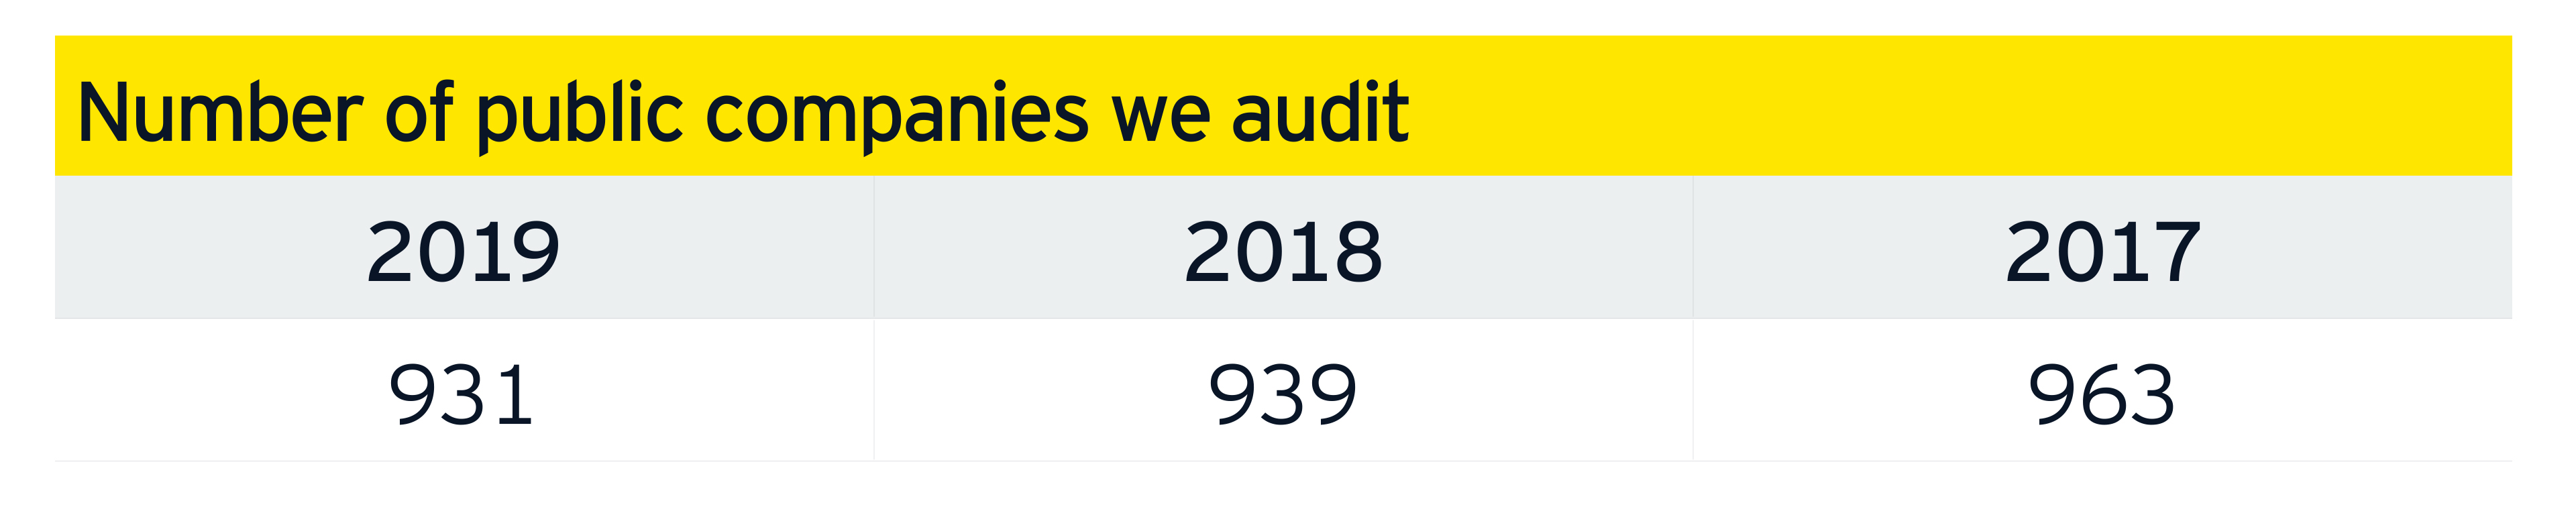 Number of public companies we audit